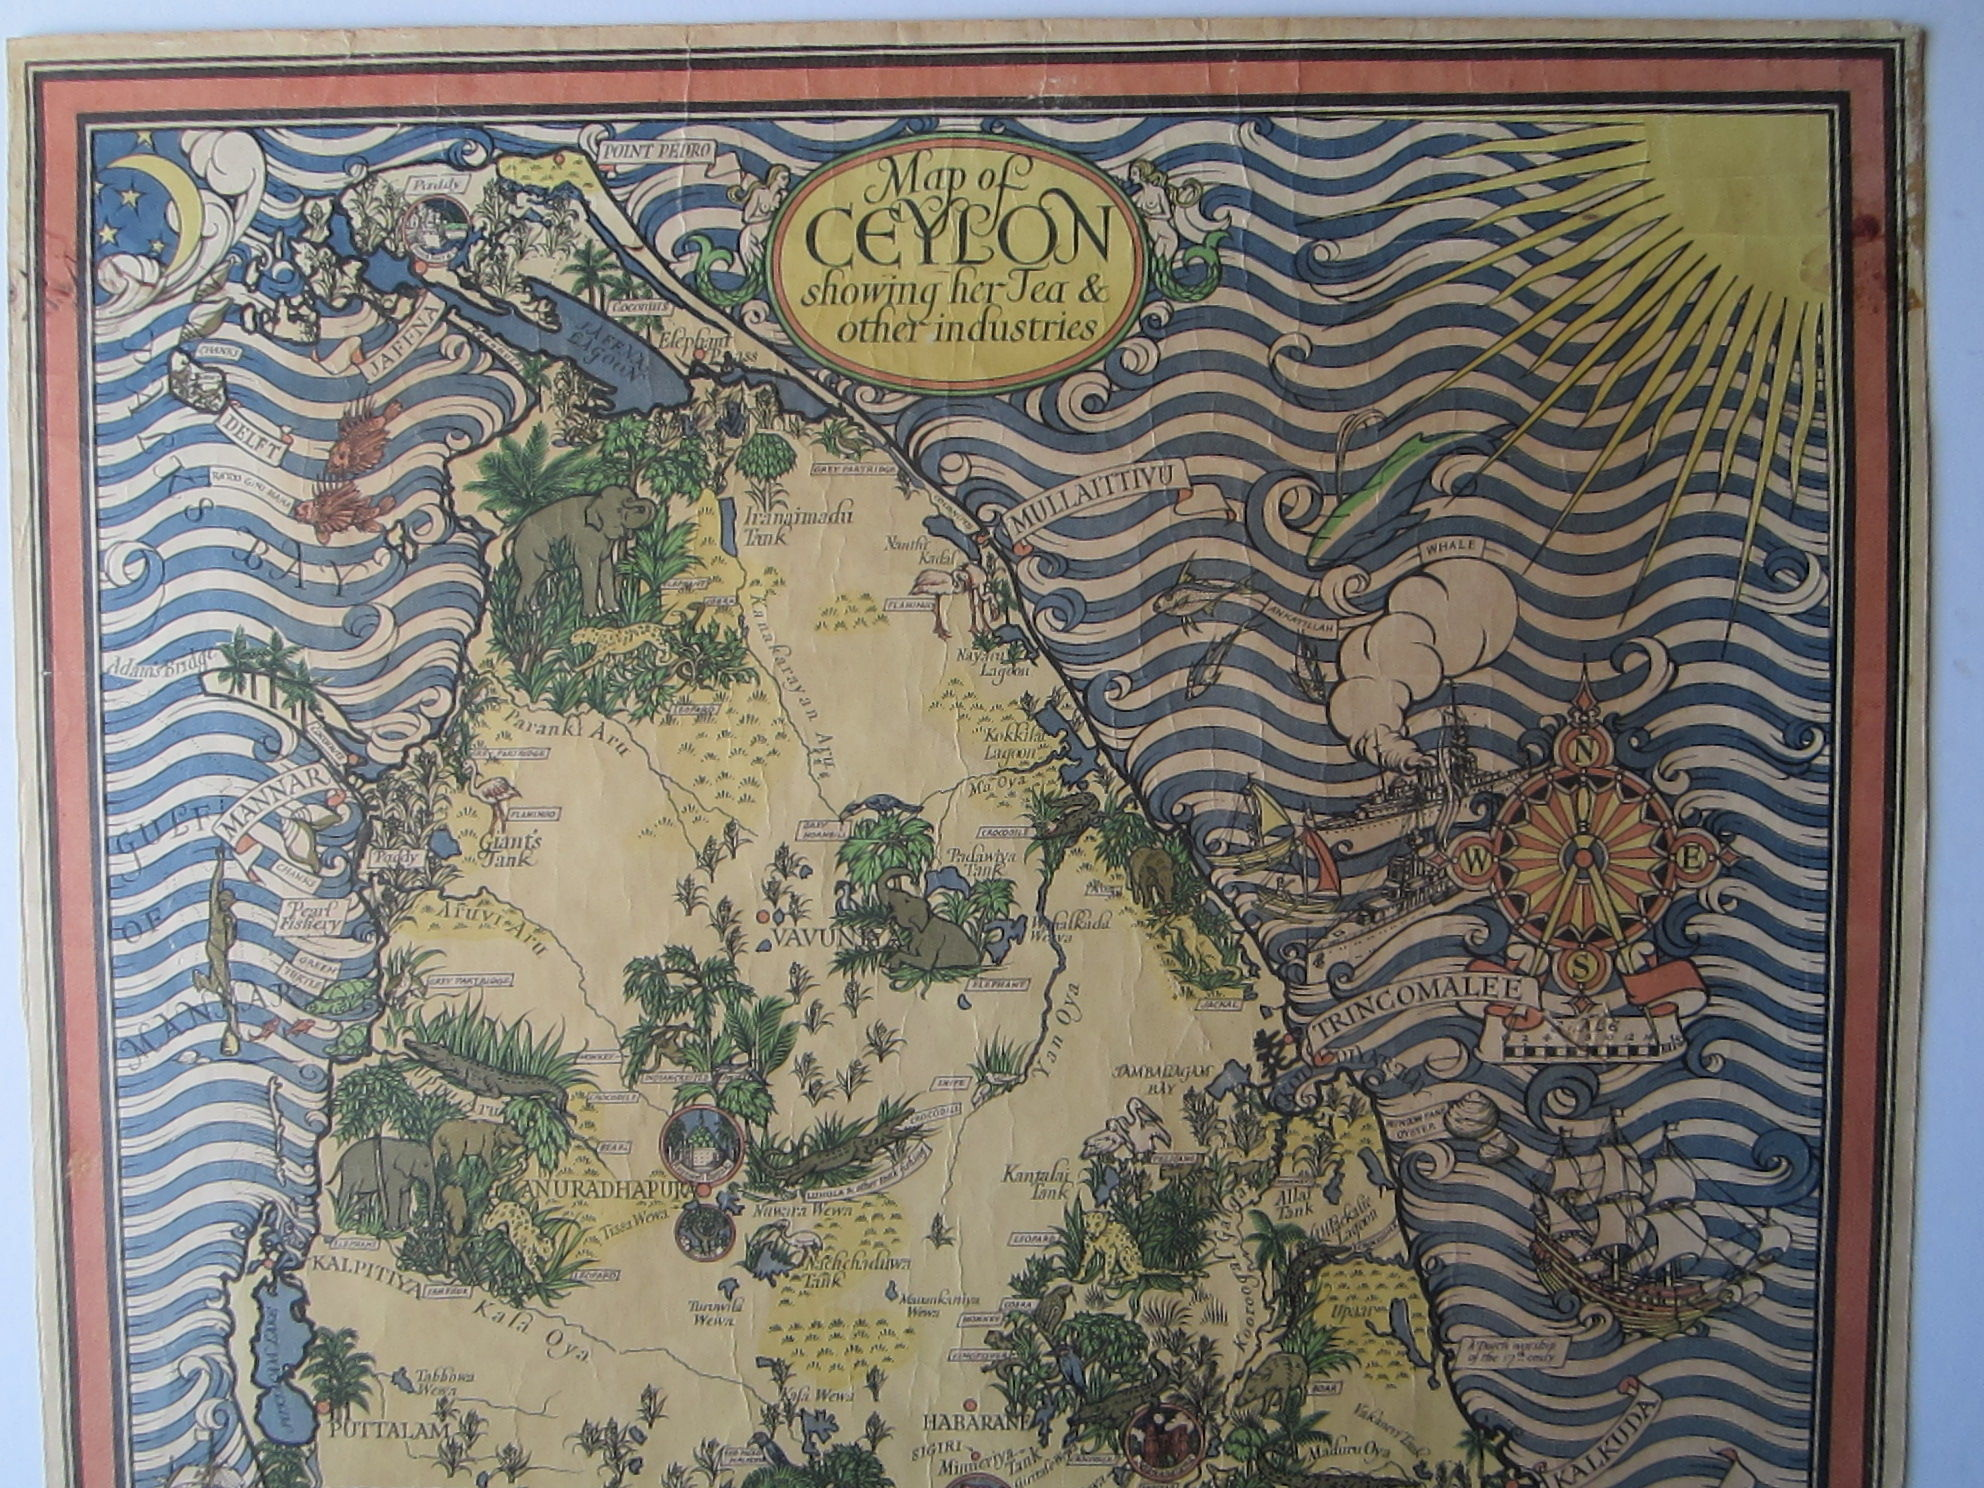 Map of Ceylon showing her Tea & other industries. (photo 3)